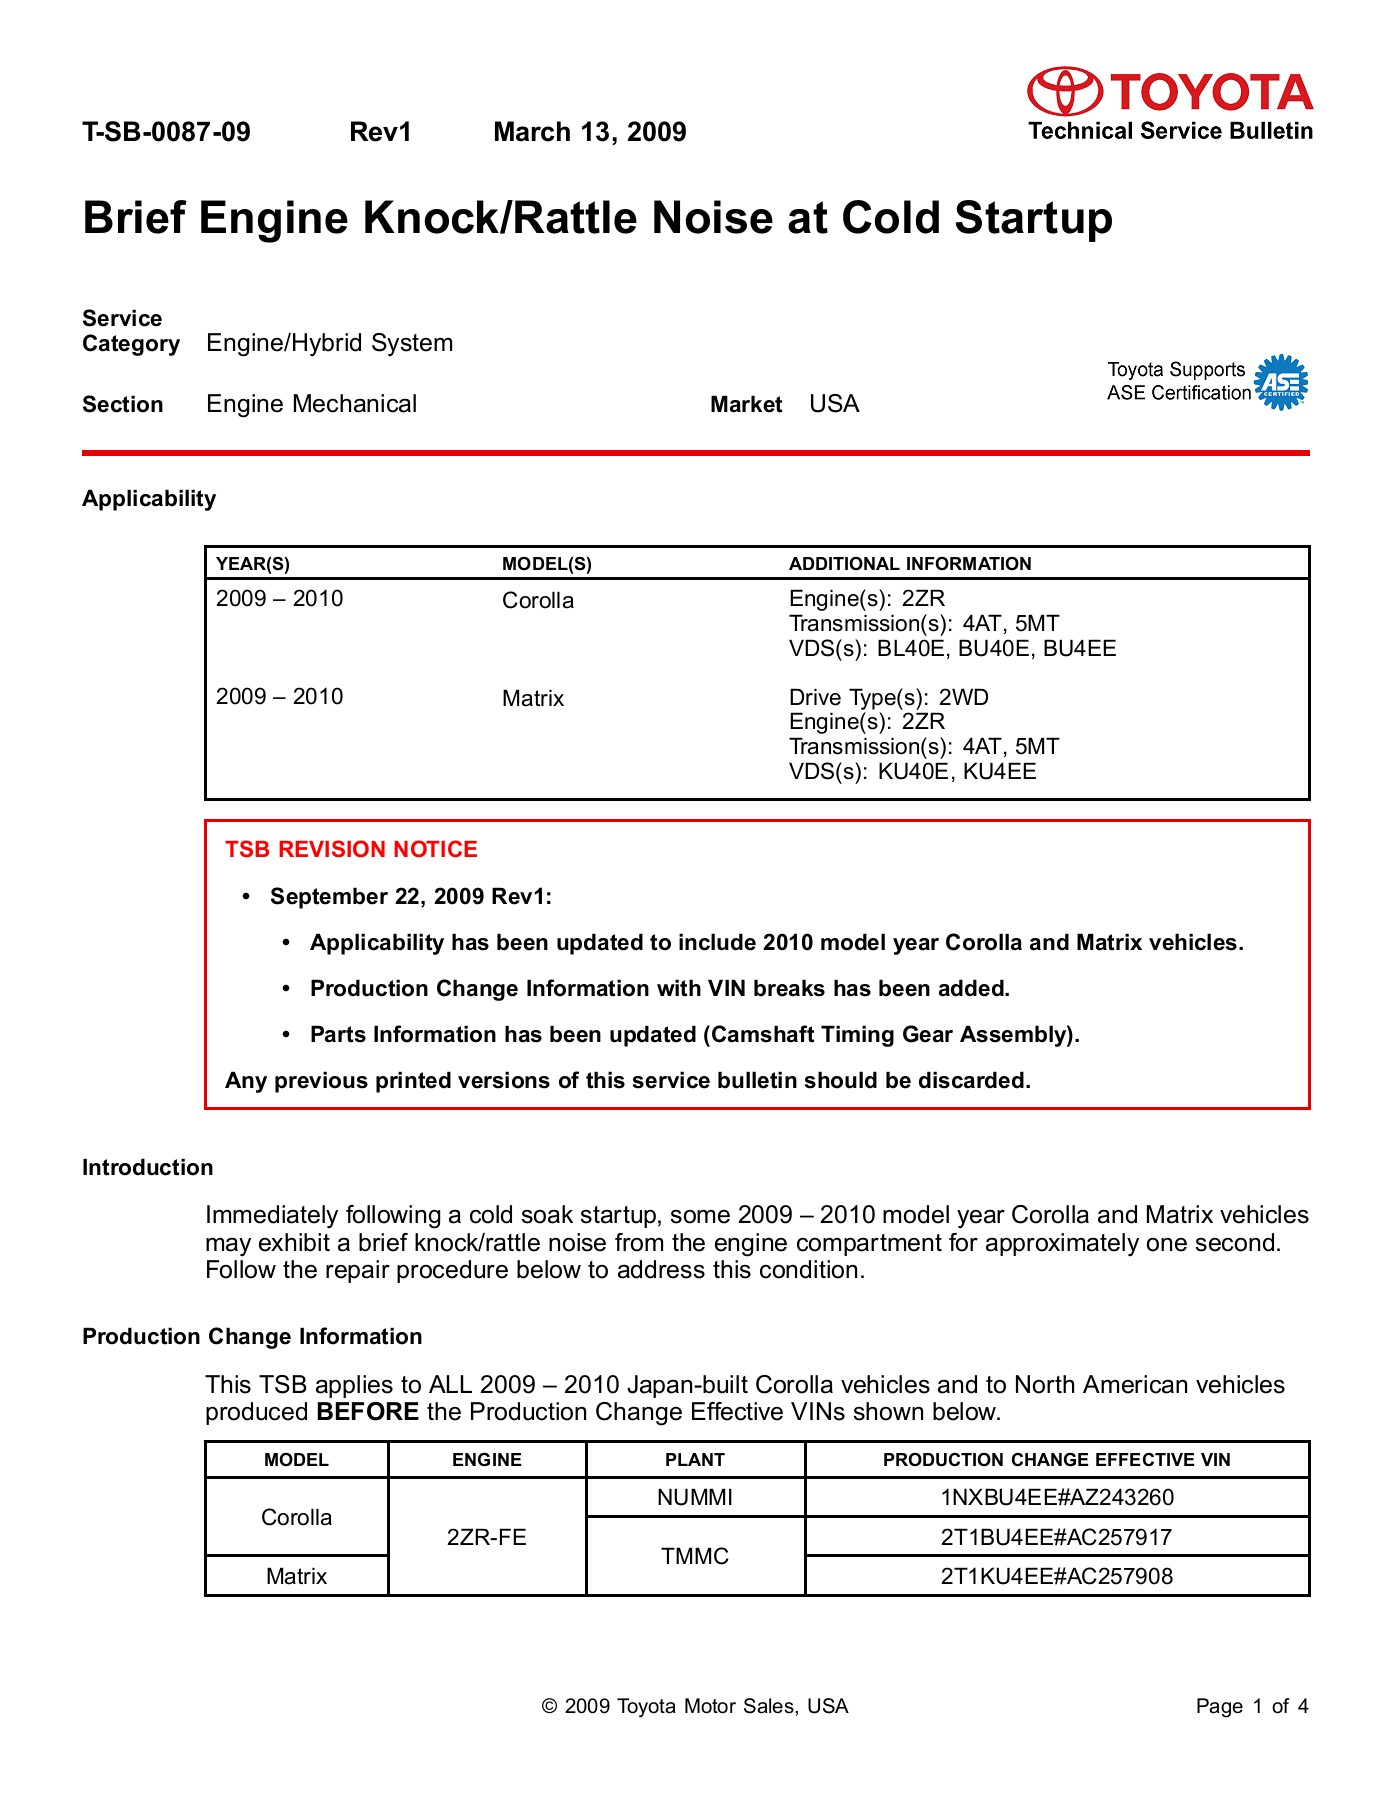 Brief Engine Knock/Rattle Noise at Cold Startup - ToyotaPart Pages 1